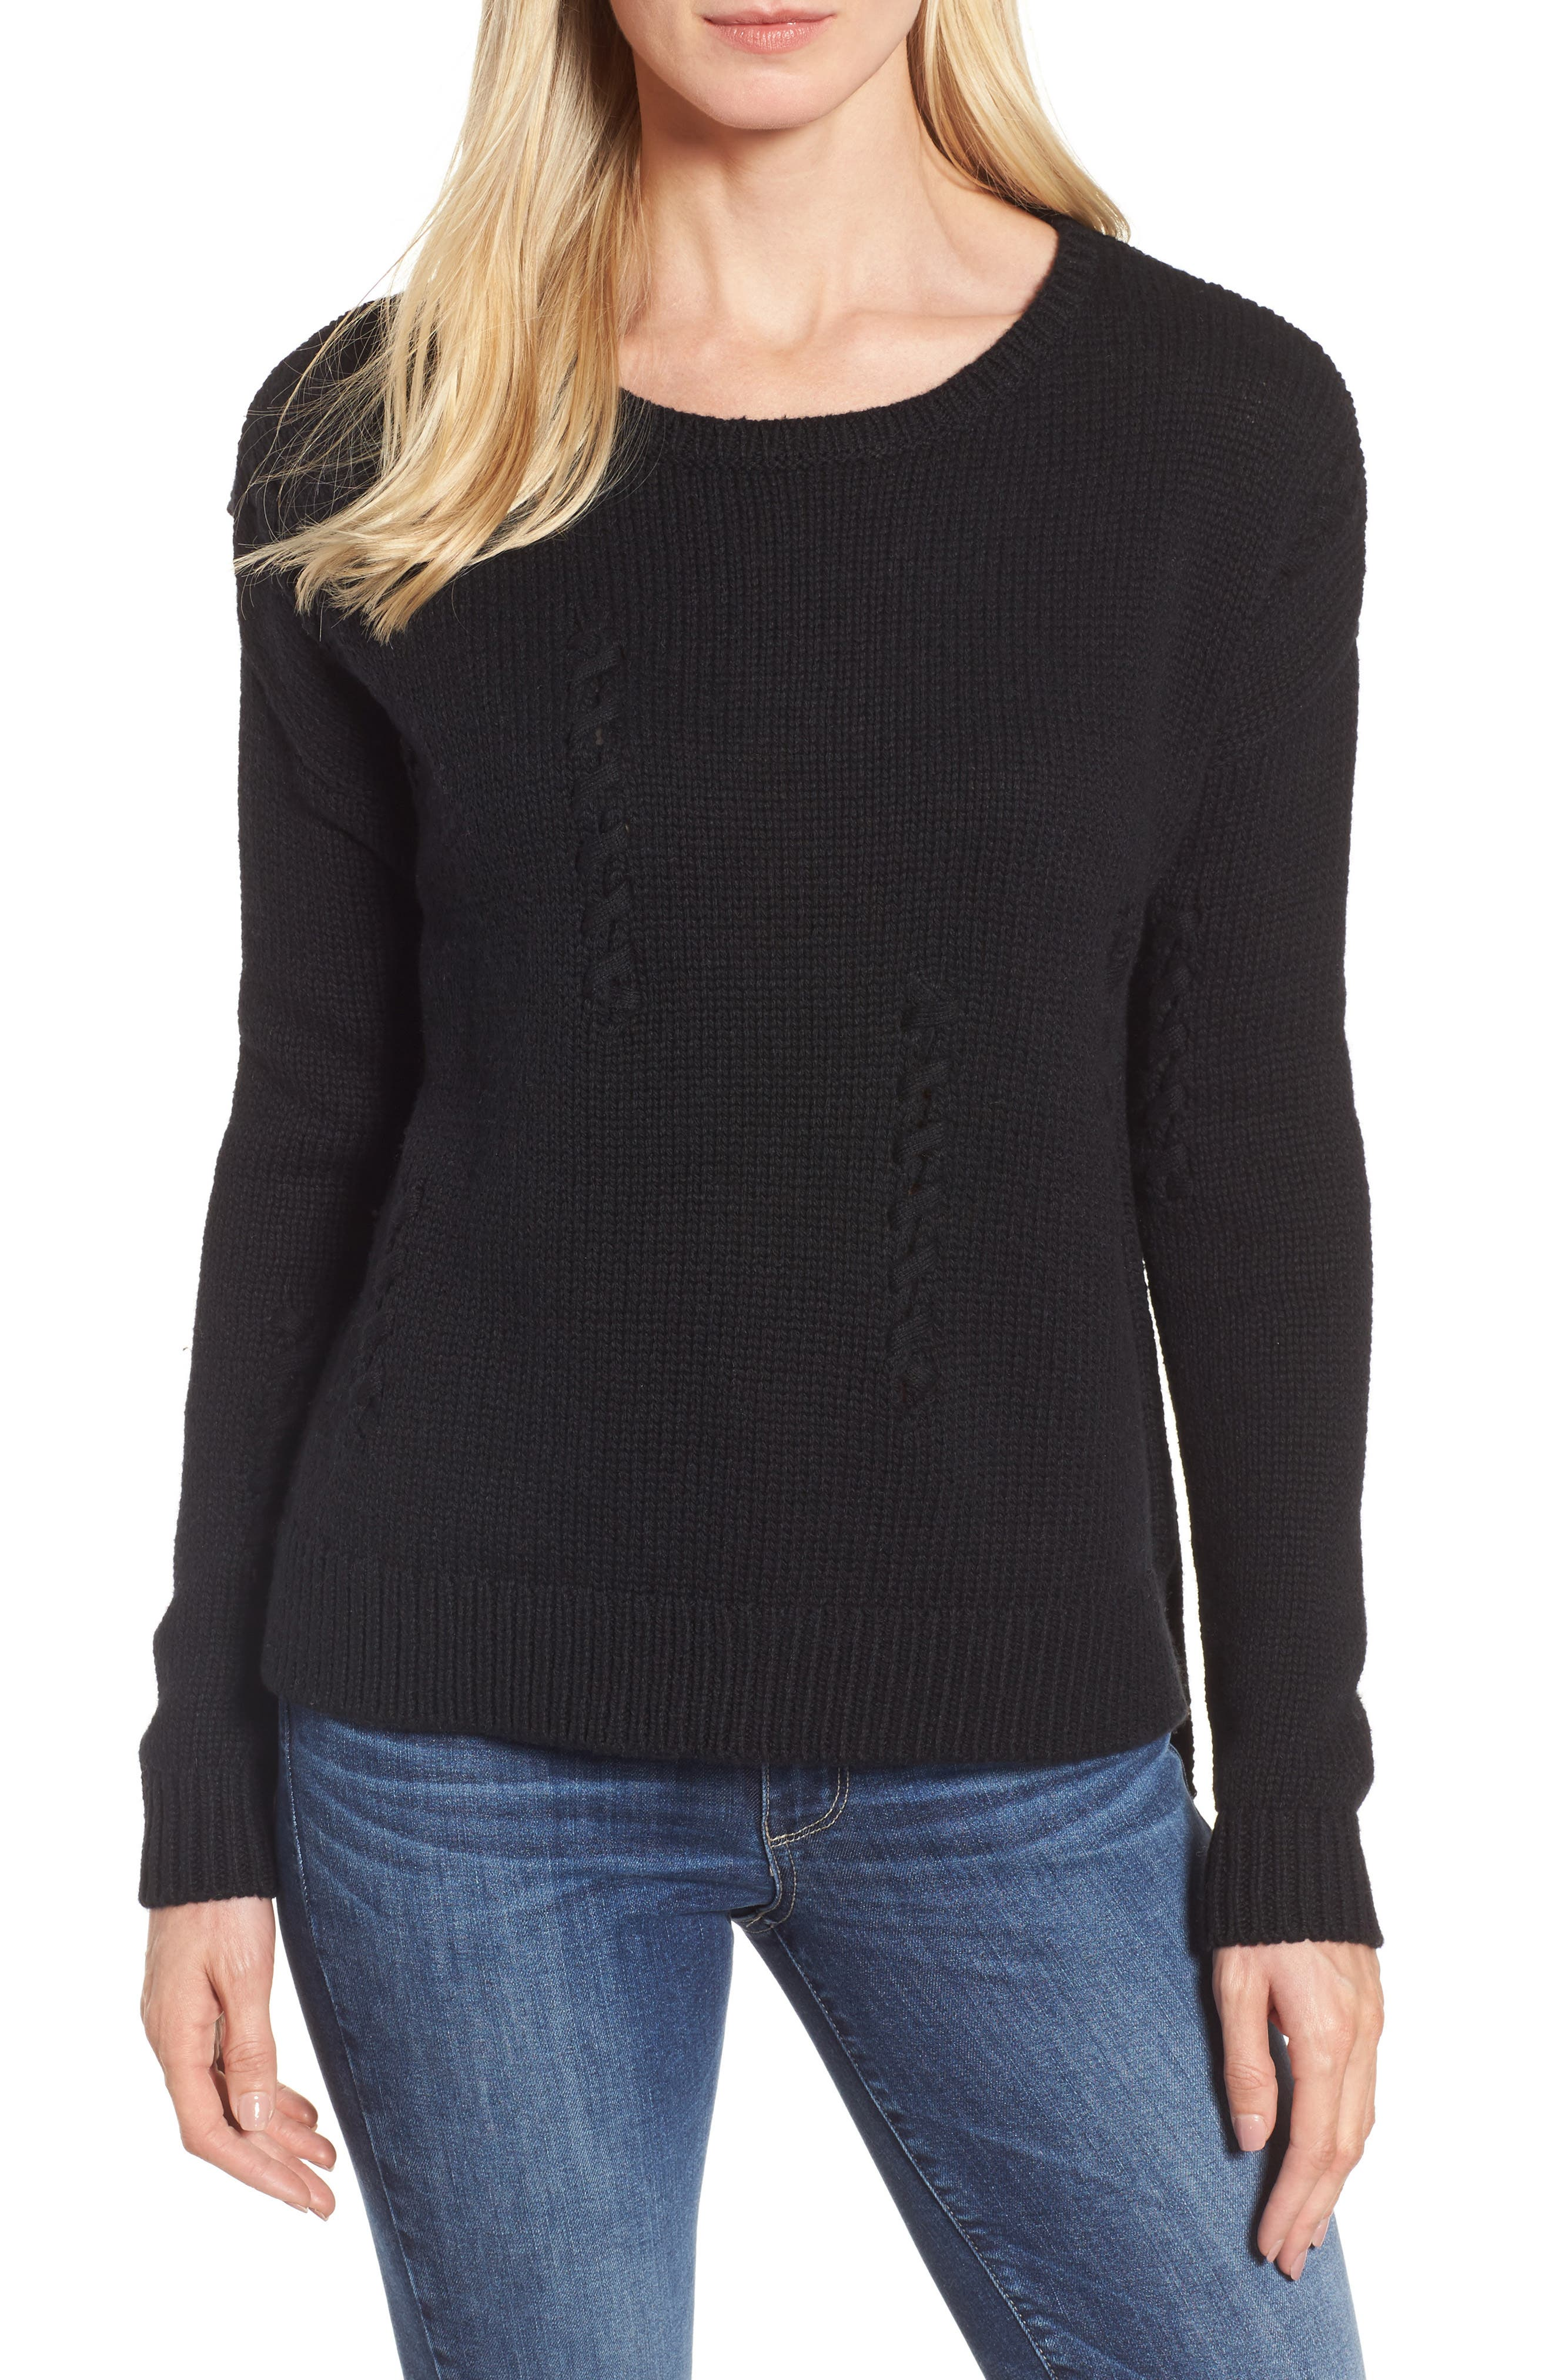 Whipstitch Detail Sweater,                         Main,                         color, Black